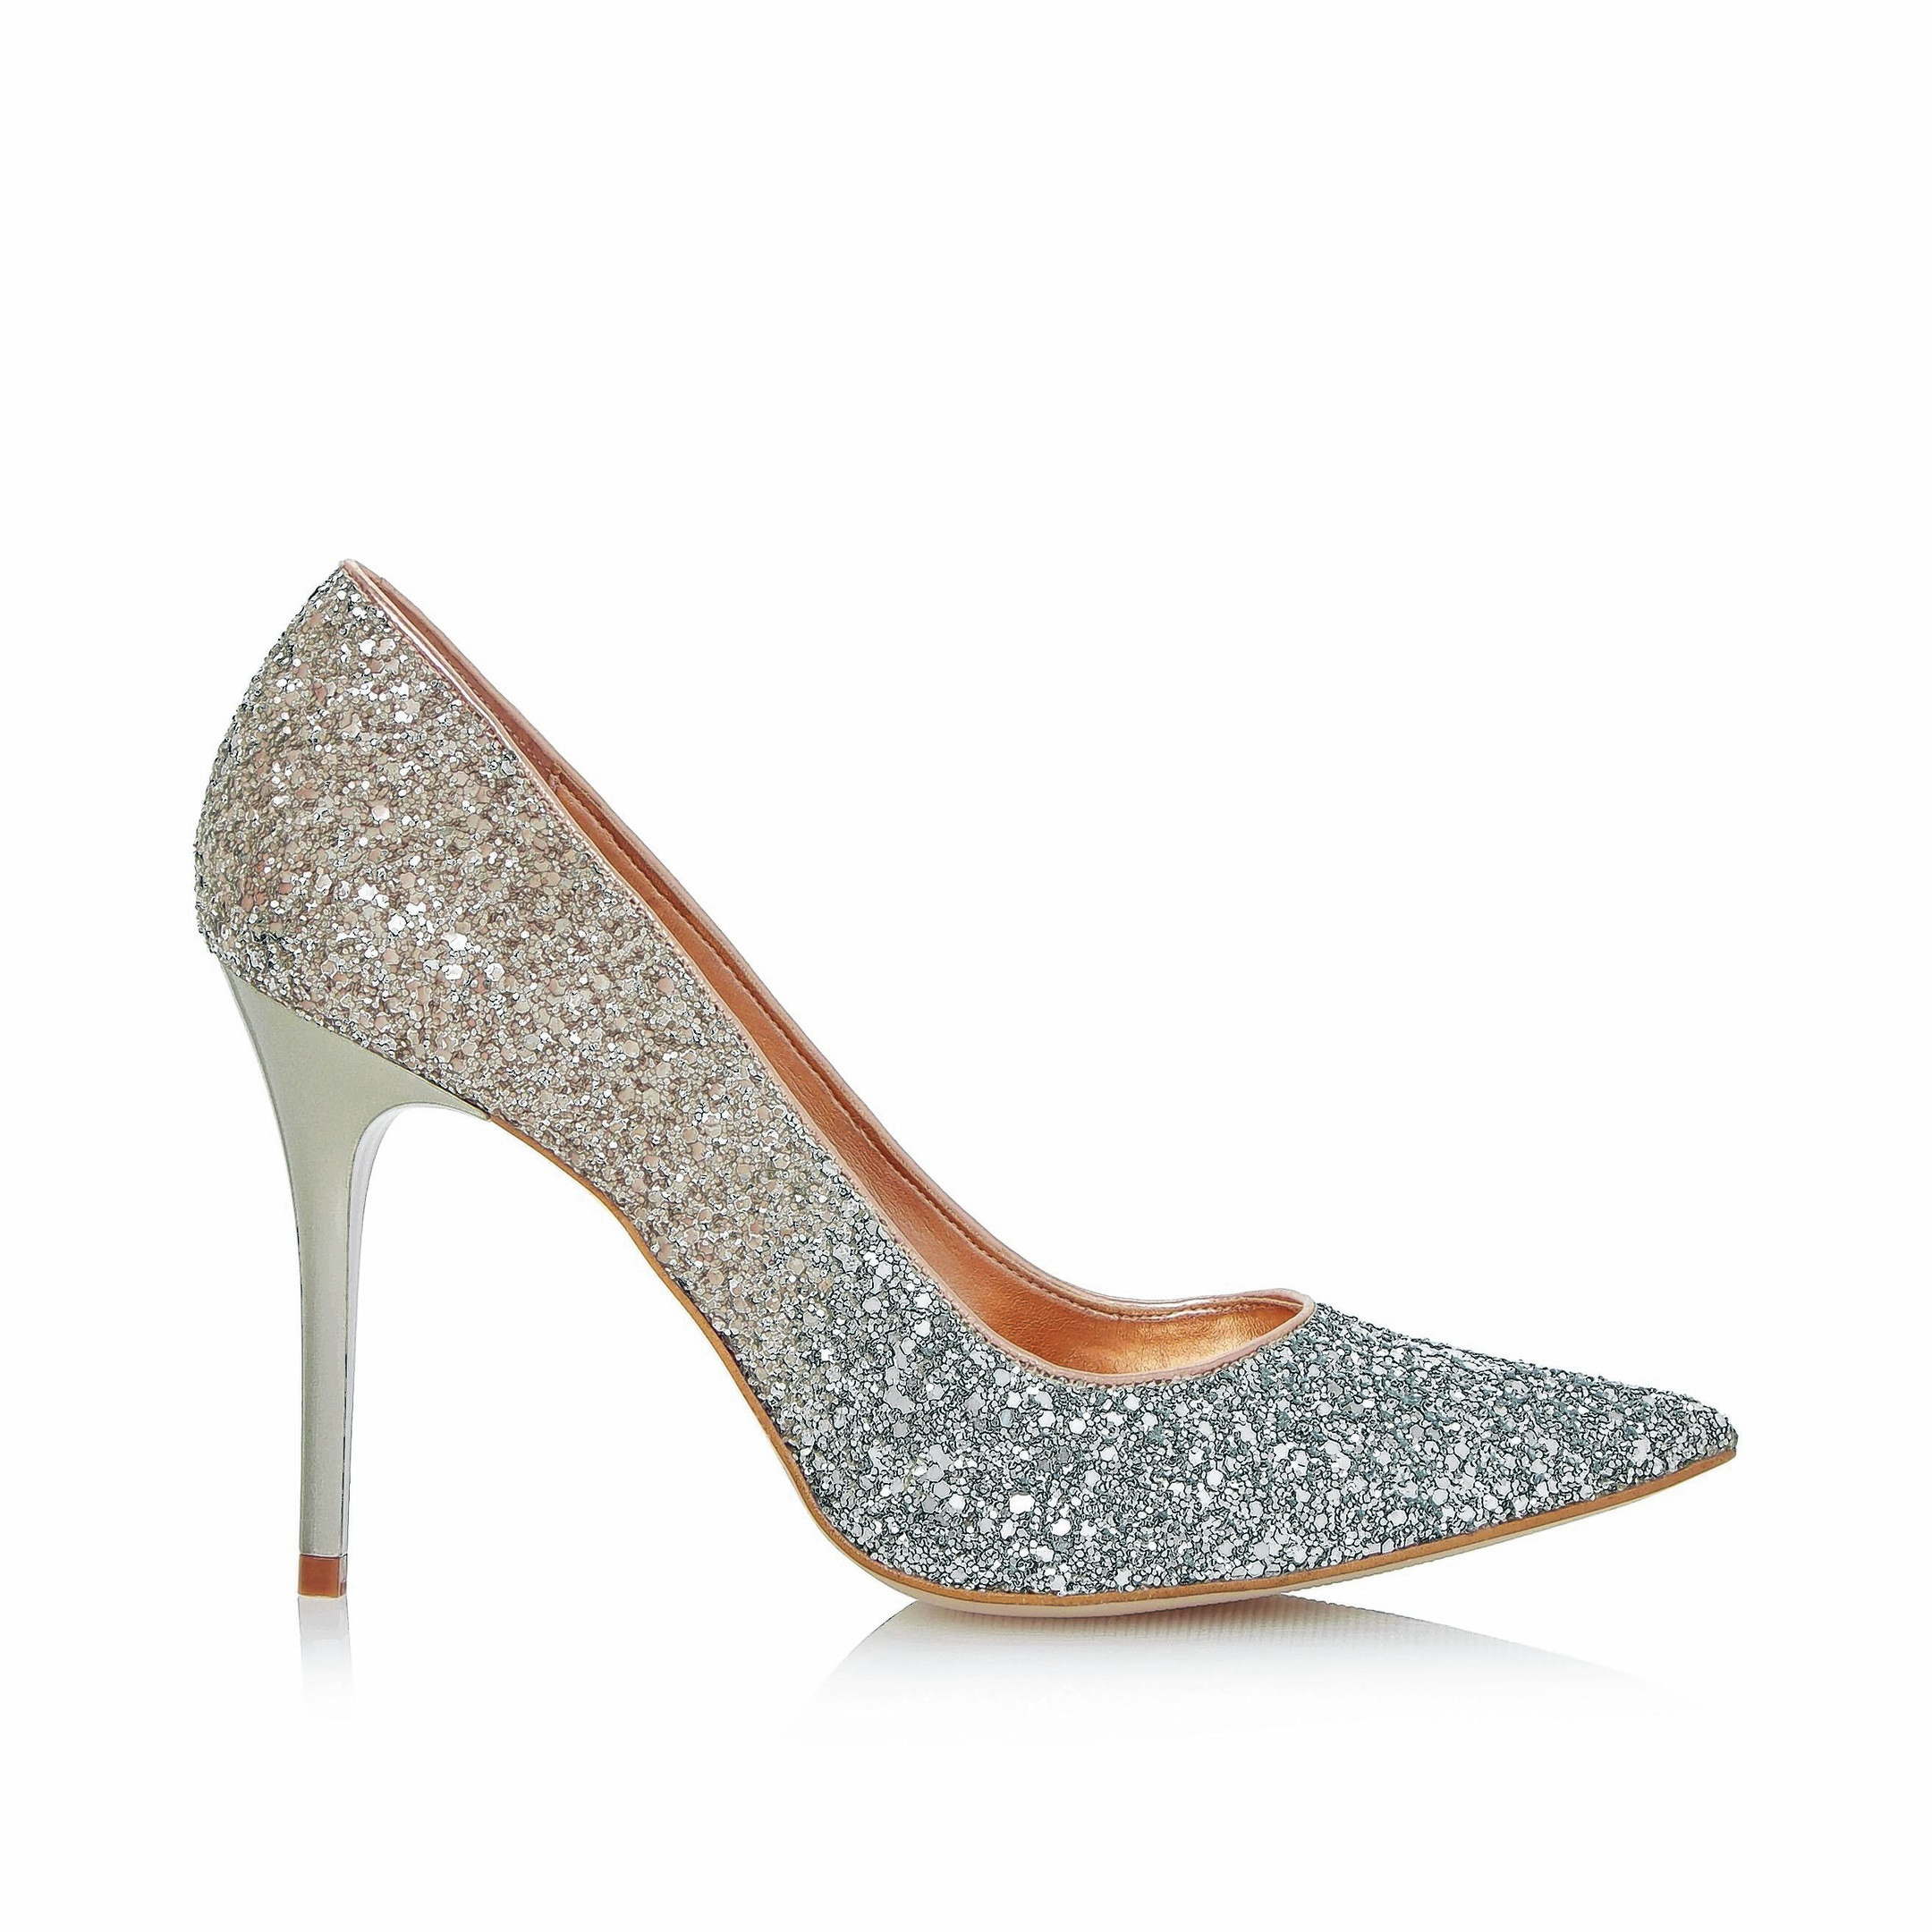 Bindy Glitter Ombre Court, £85, Dune  - available mid-March